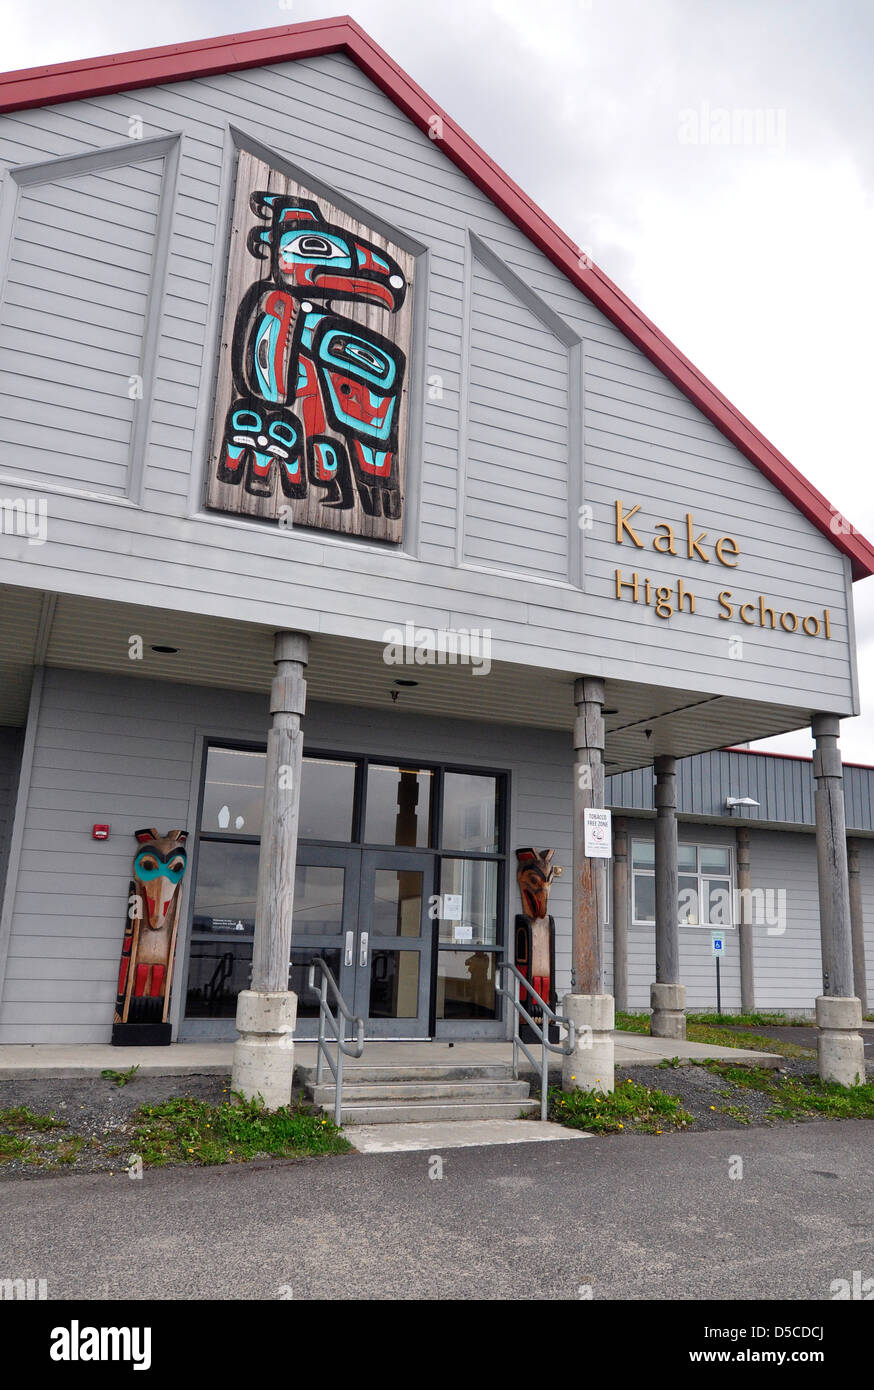 School in the Tlingit town of Kake, Alaska. - Stock Image